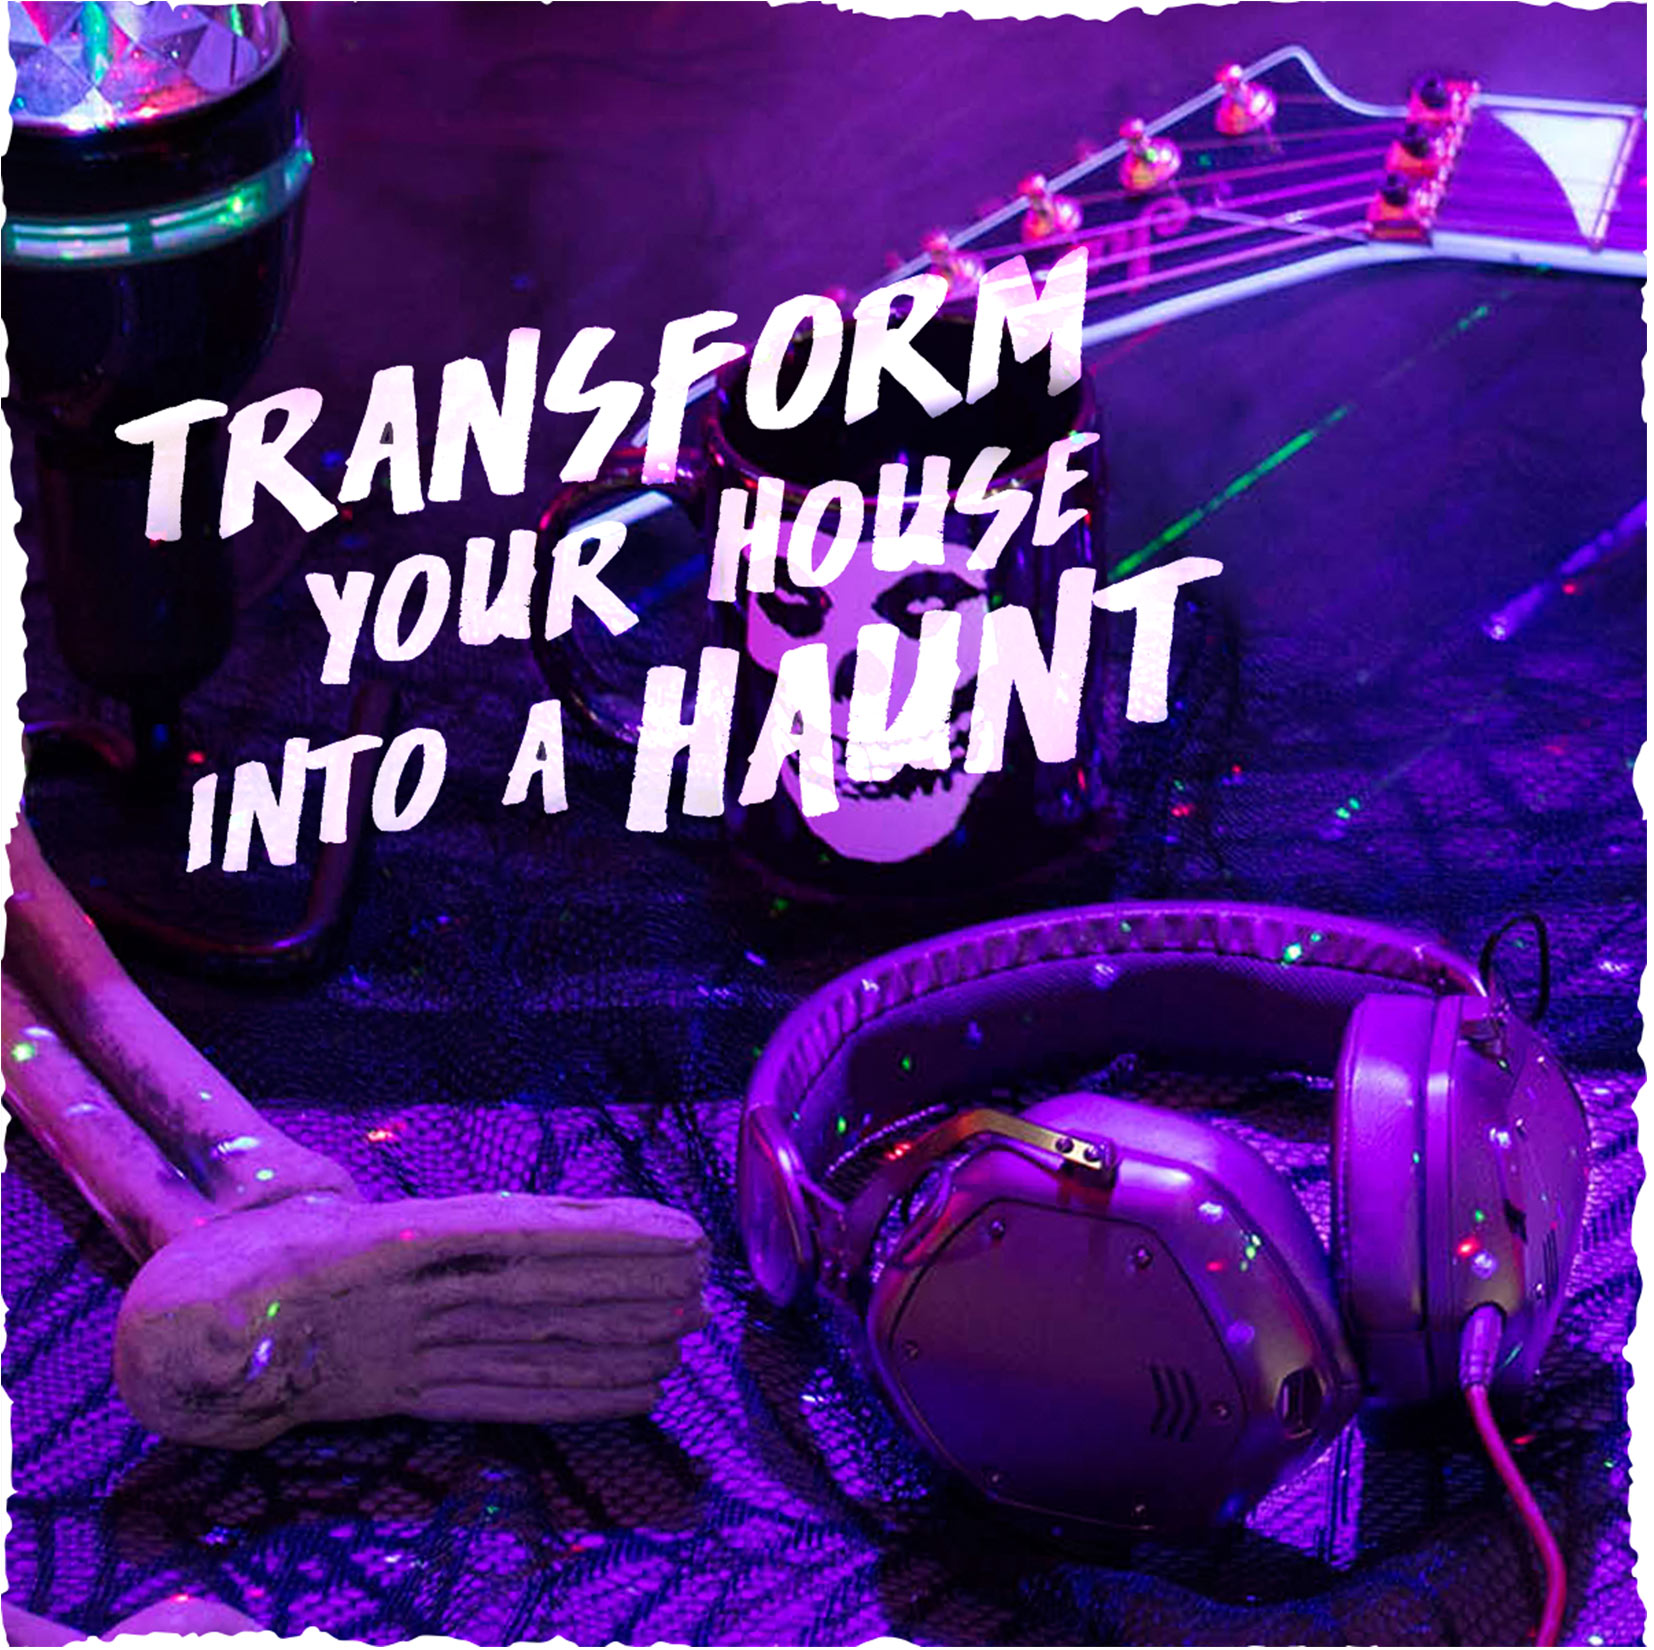 Transform your House into a Haunt